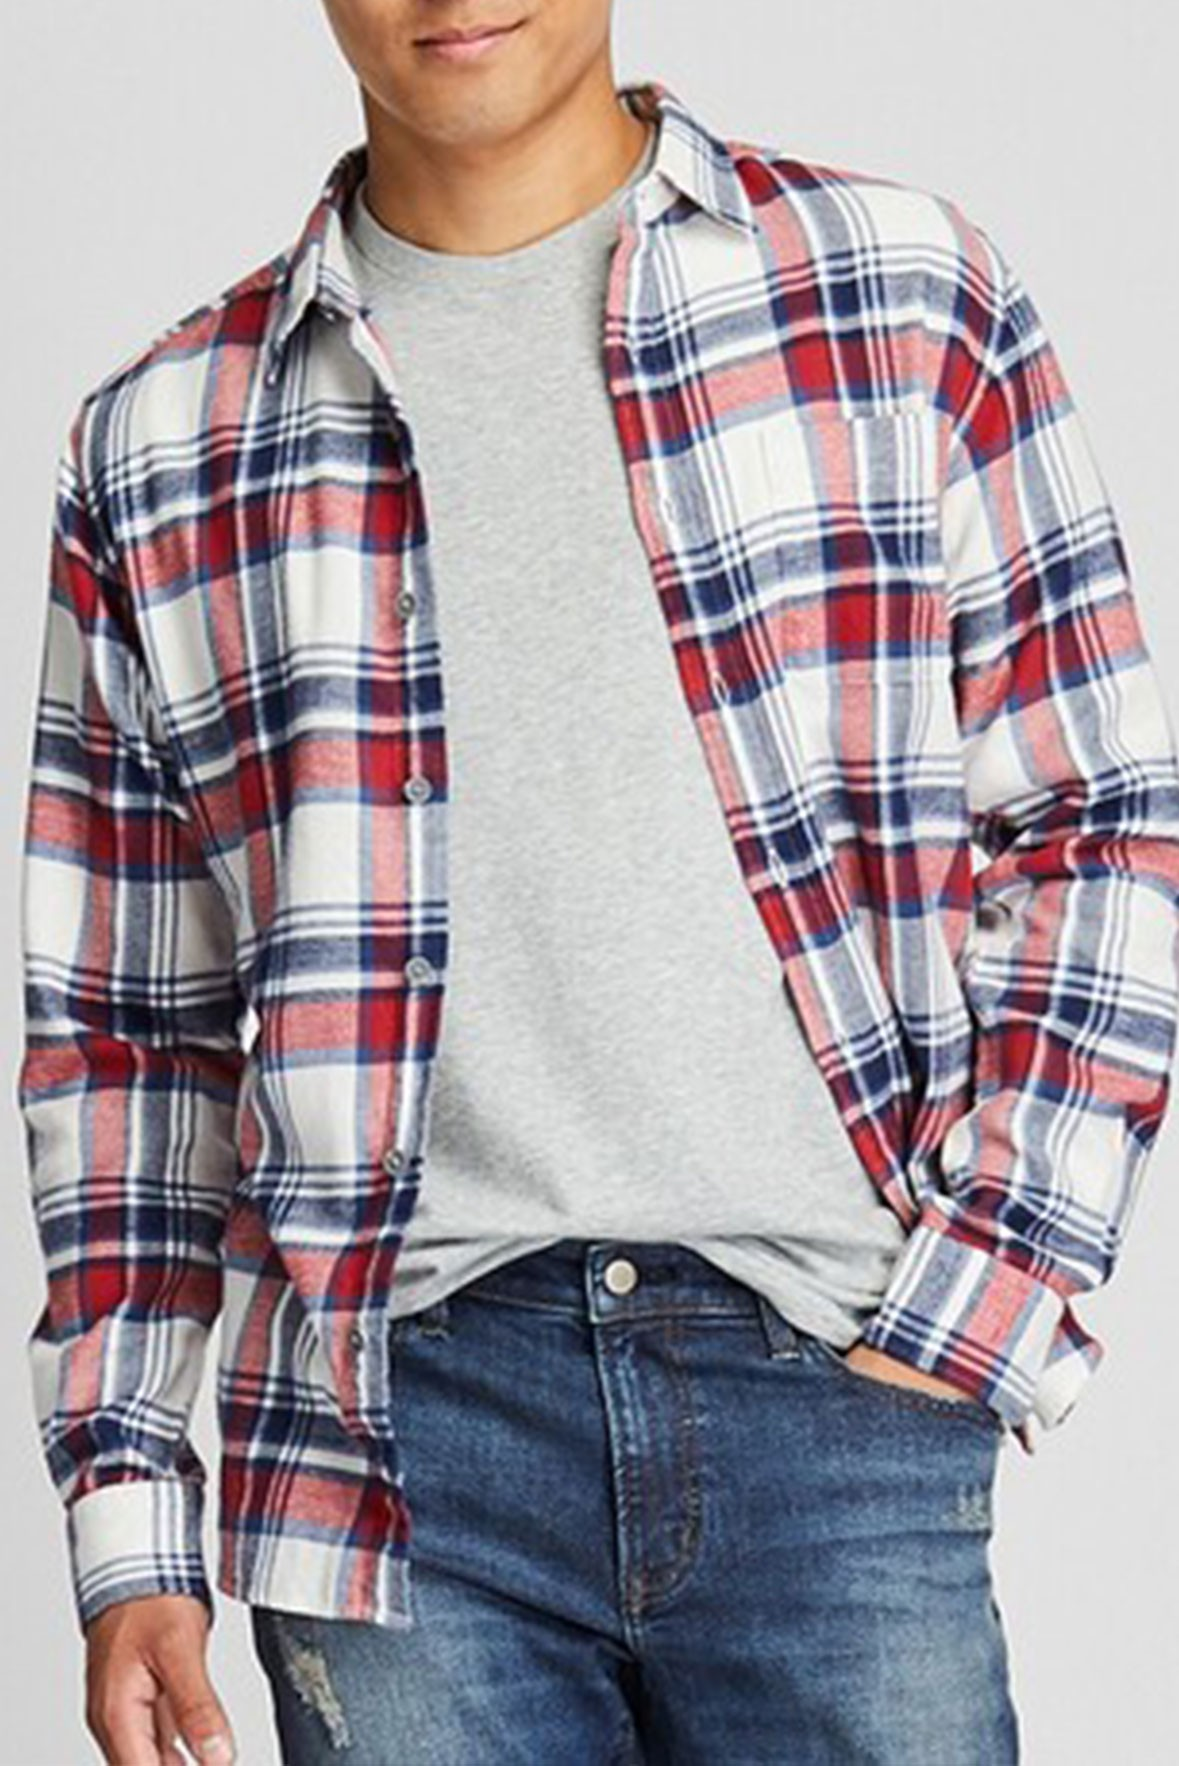 Men's Basic Full Sleeves Blue and Red Check Shirt S197